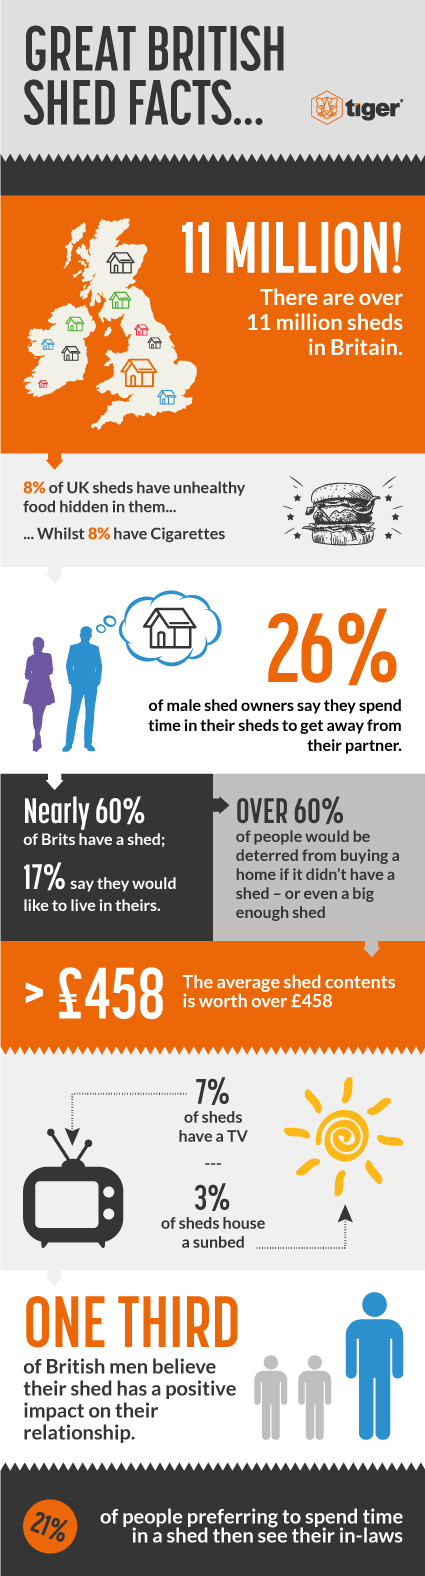 Great British Shed Facts